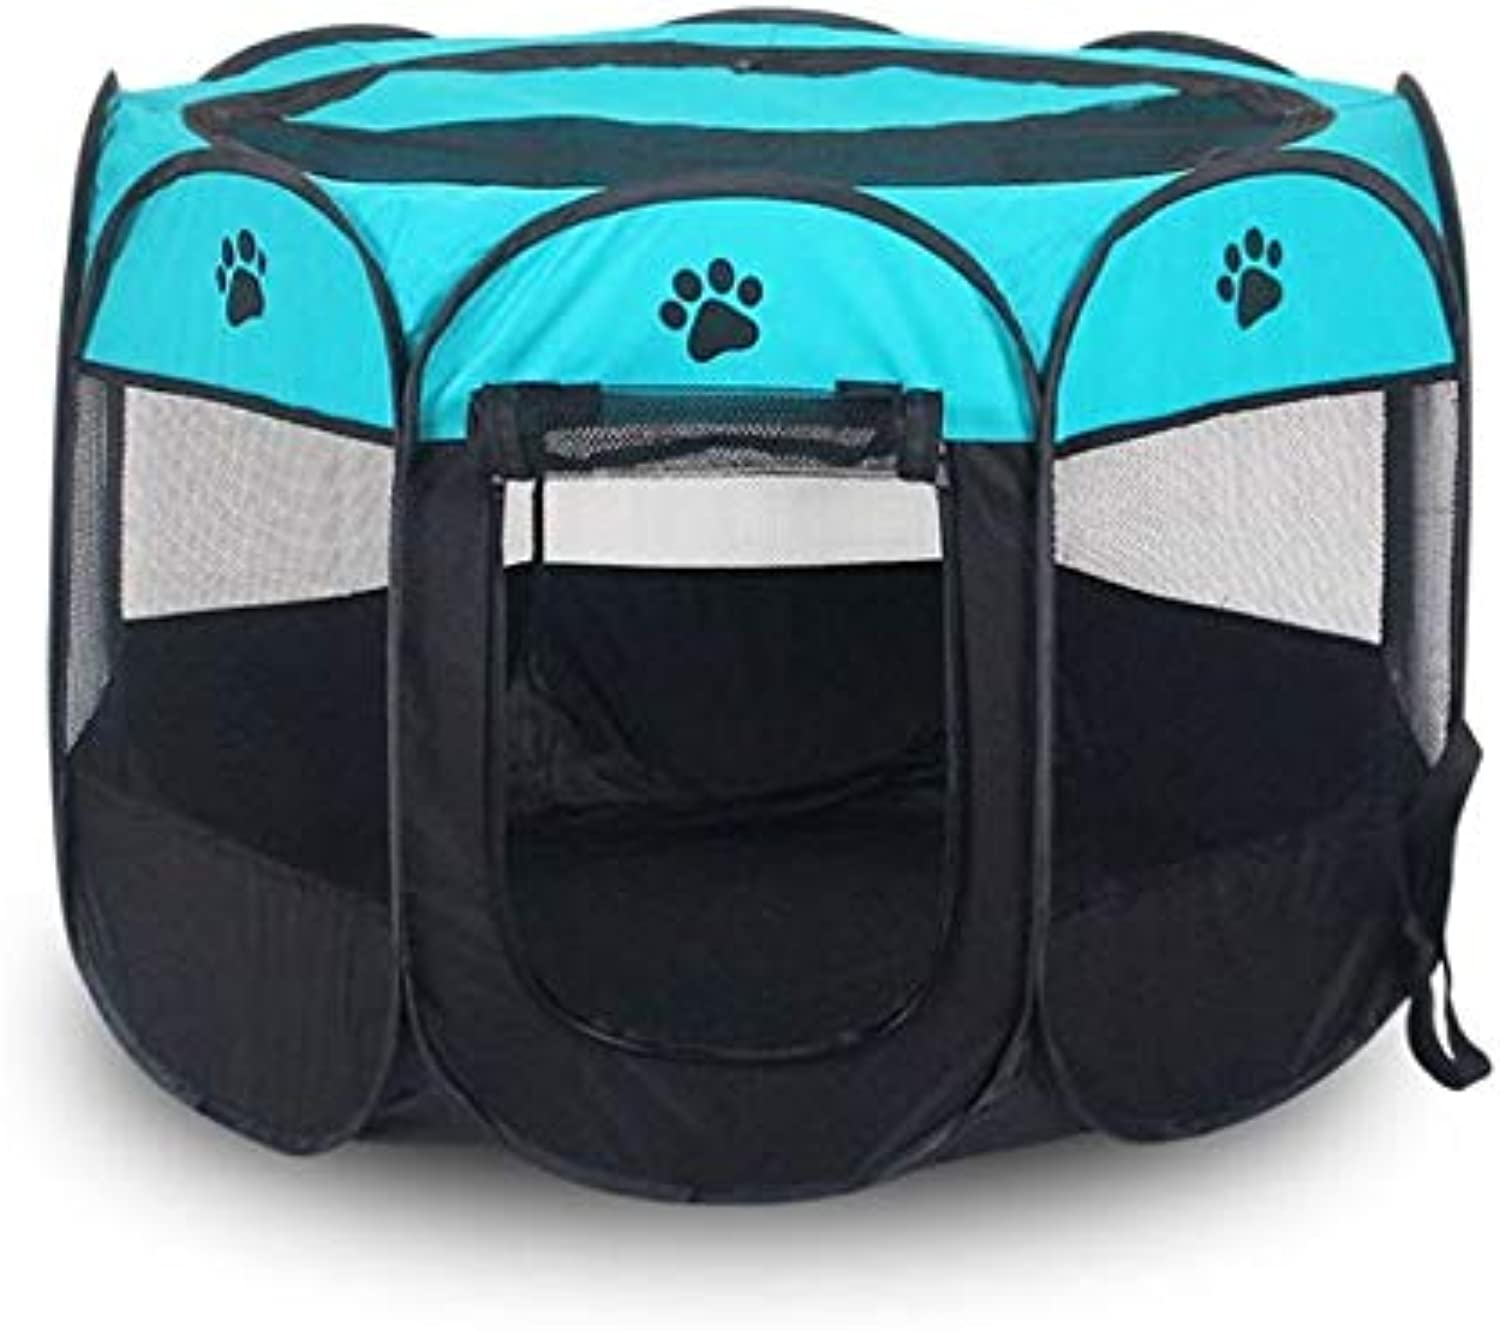 Foldable Pet Puppy Playpen, Portable Dog Cat Pet Tent Indoor Outdoor Use Pet Kennel Cage(bluee) (Size   S)